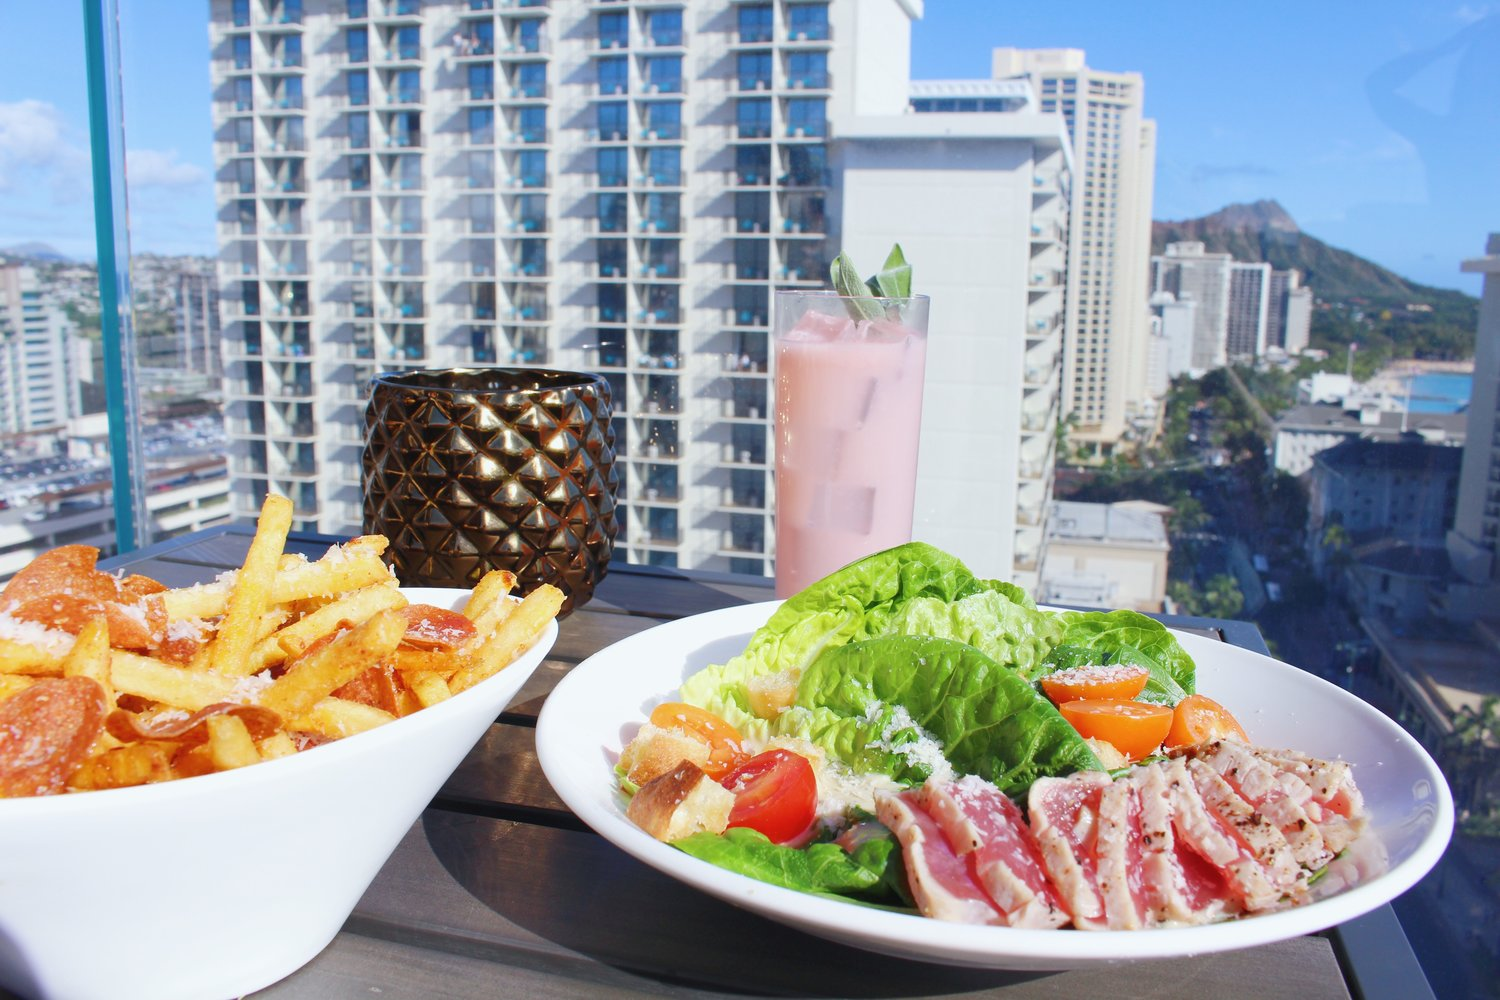 SKY+Parmesan+&+Pepperoni+Fries,+Sage+It+Isn't+So,+Caesar+Salad+with+Seared+Ahi.jpg